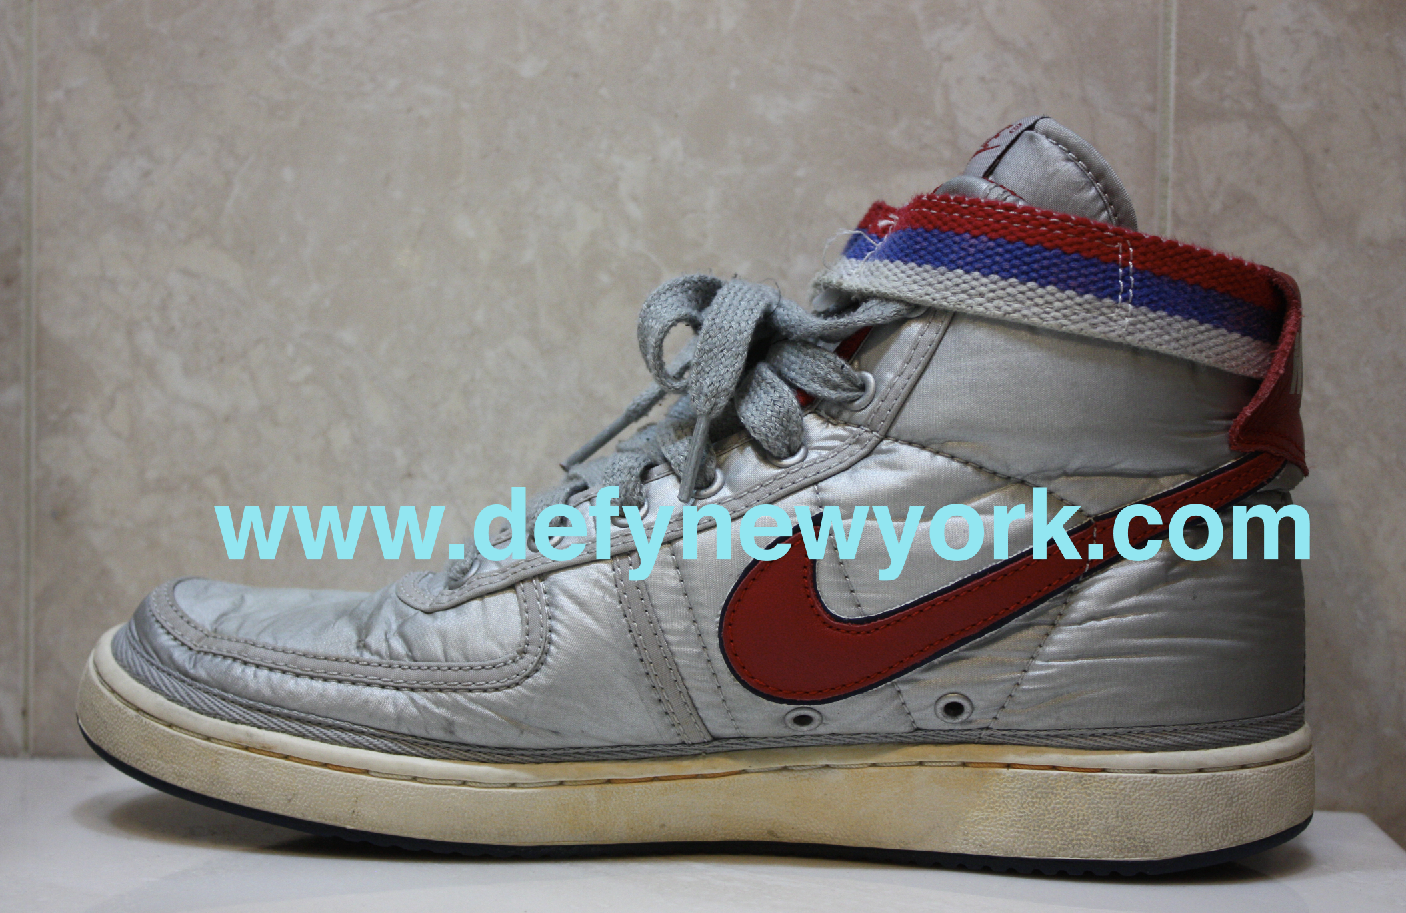 quality design fa2eb d2476 ... and aged by Nike to give them that vintage look even though they are  new. This shoe definitely commands respect, check out the pictures from the  DeFY.